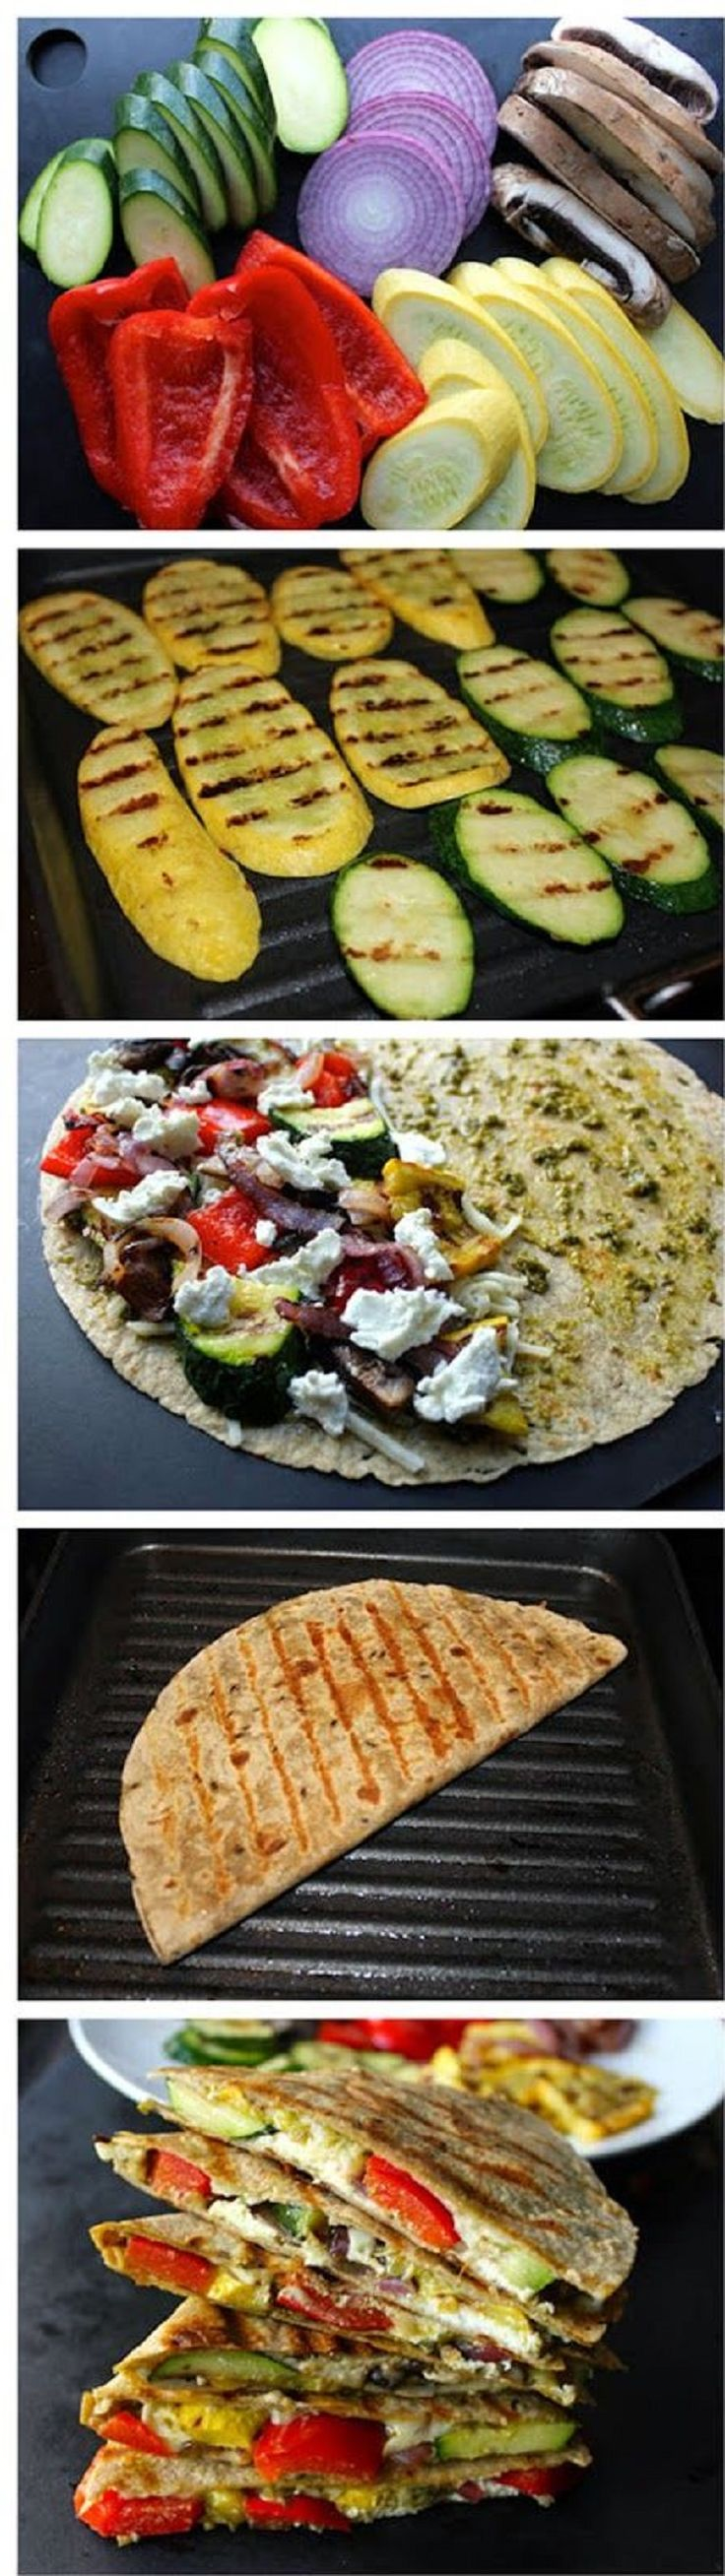 Grilled Veggie Pesto Quesadillas